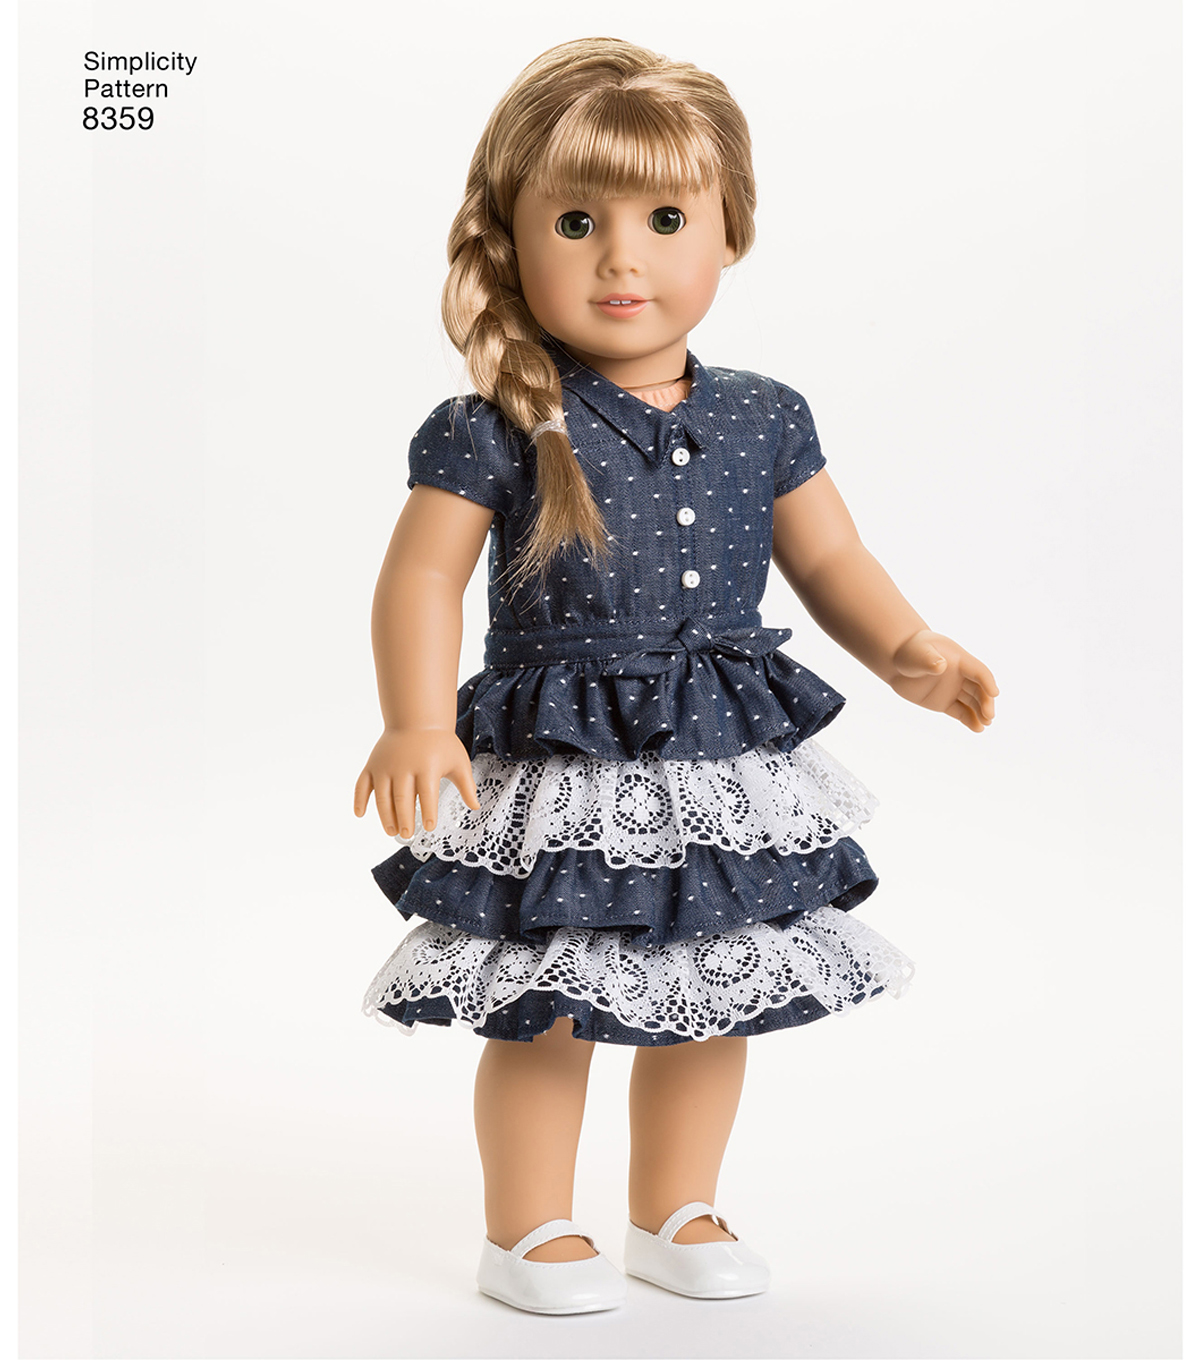 Simplicity Pattern 8359 18 Doll American Girl Clothes Joann